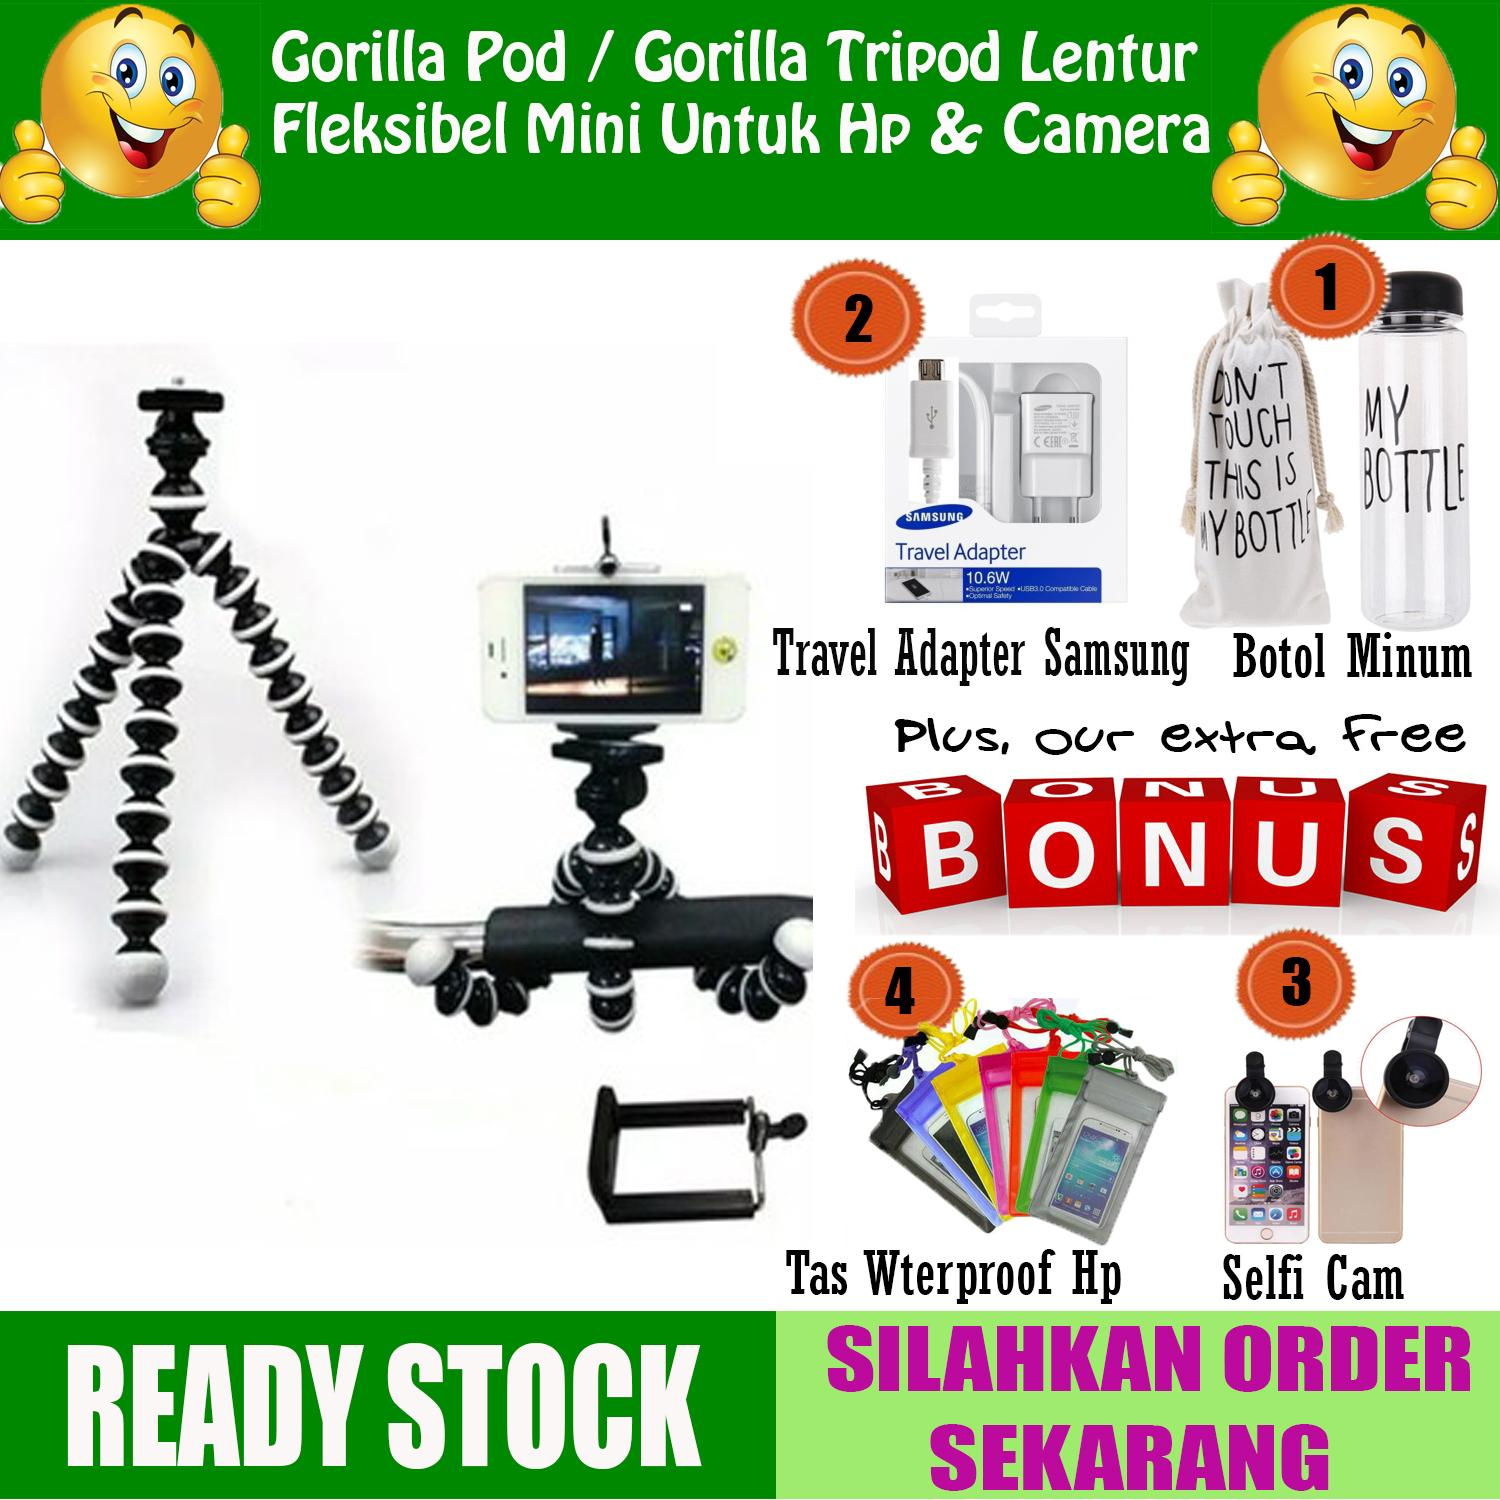 Gorilla Pod / Gorila Tripod-Tripod Lentur Fleksibel Mini Untuk HP Kamera dan Action Cam + GRATIS Travel Adapter Samsung + Botol Minum + Tas Waterproof Hp + Selfi Cam